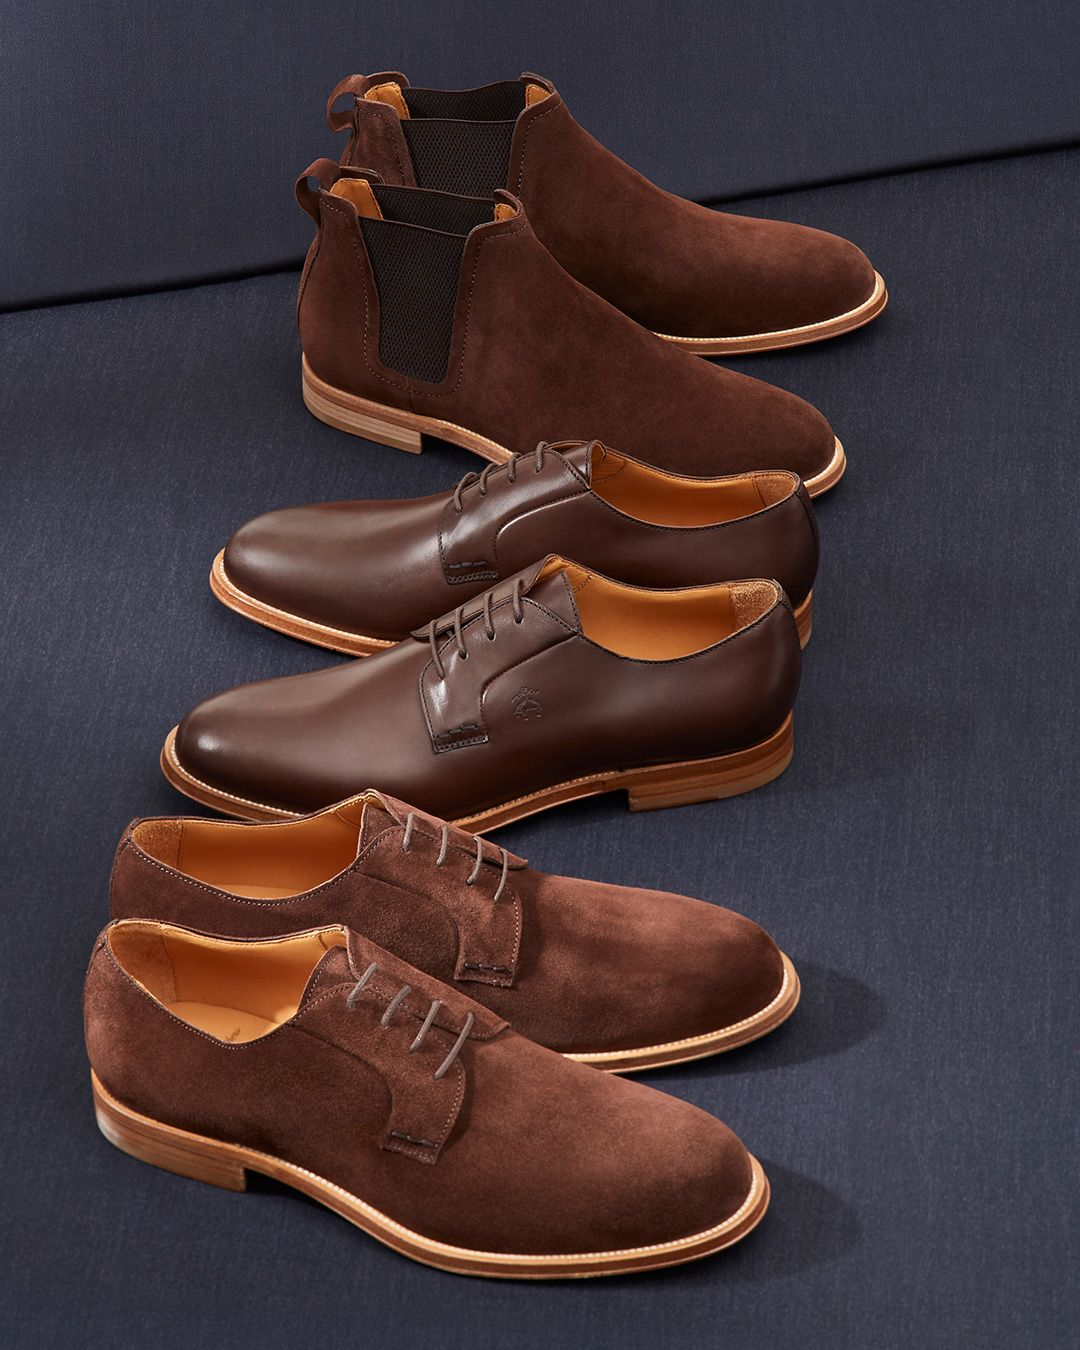 Suede Lace-Up Shoes   Brooks Brothers